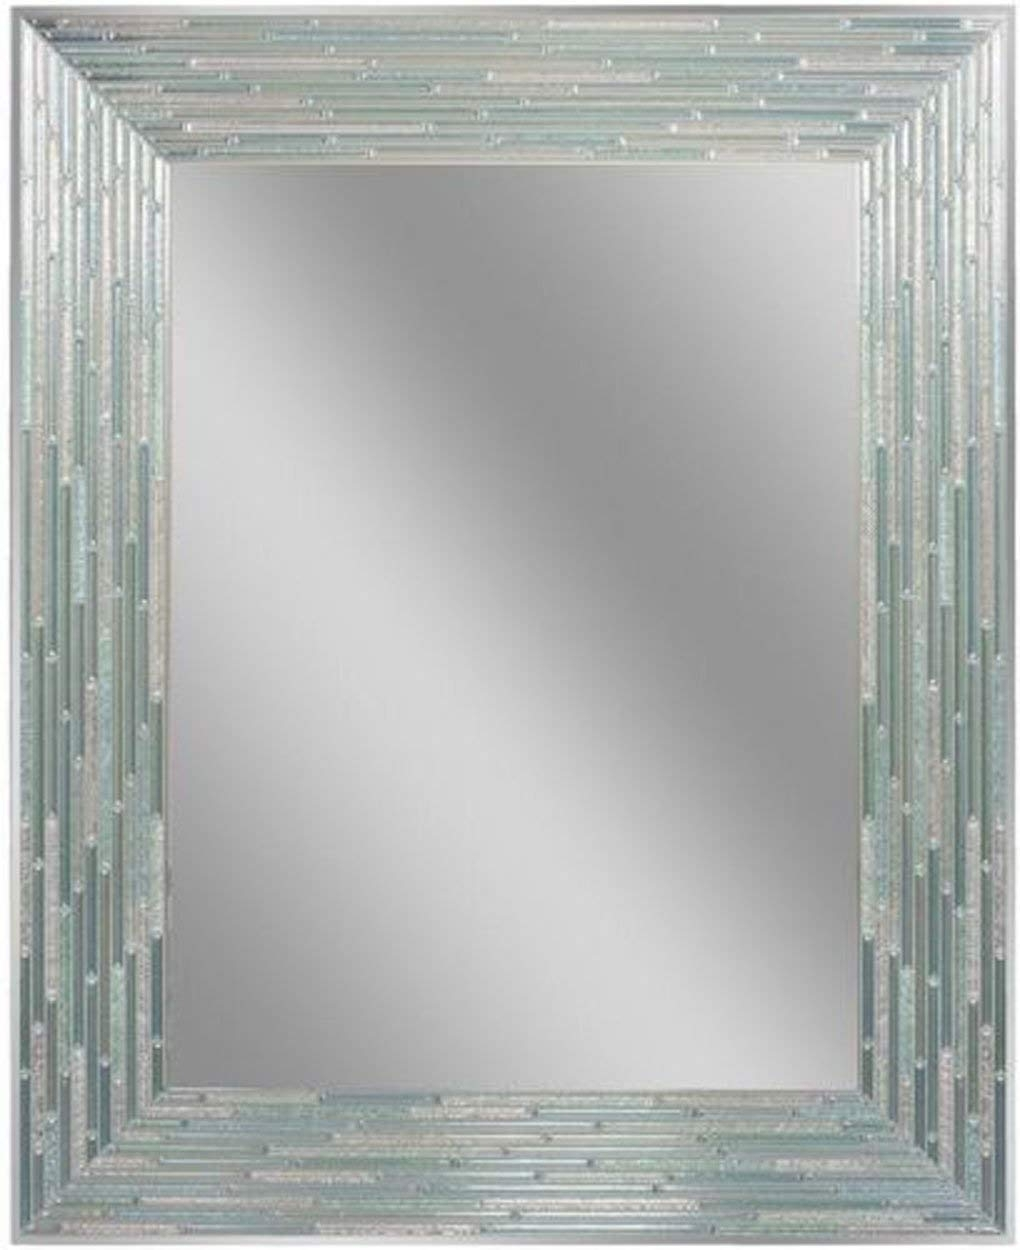 "Amazon: Headwest Reeded Sea Glass Wall Mirror, 24"" X 30"": Home Intended For Sea Glass Wall Art (View 1 of 20)"